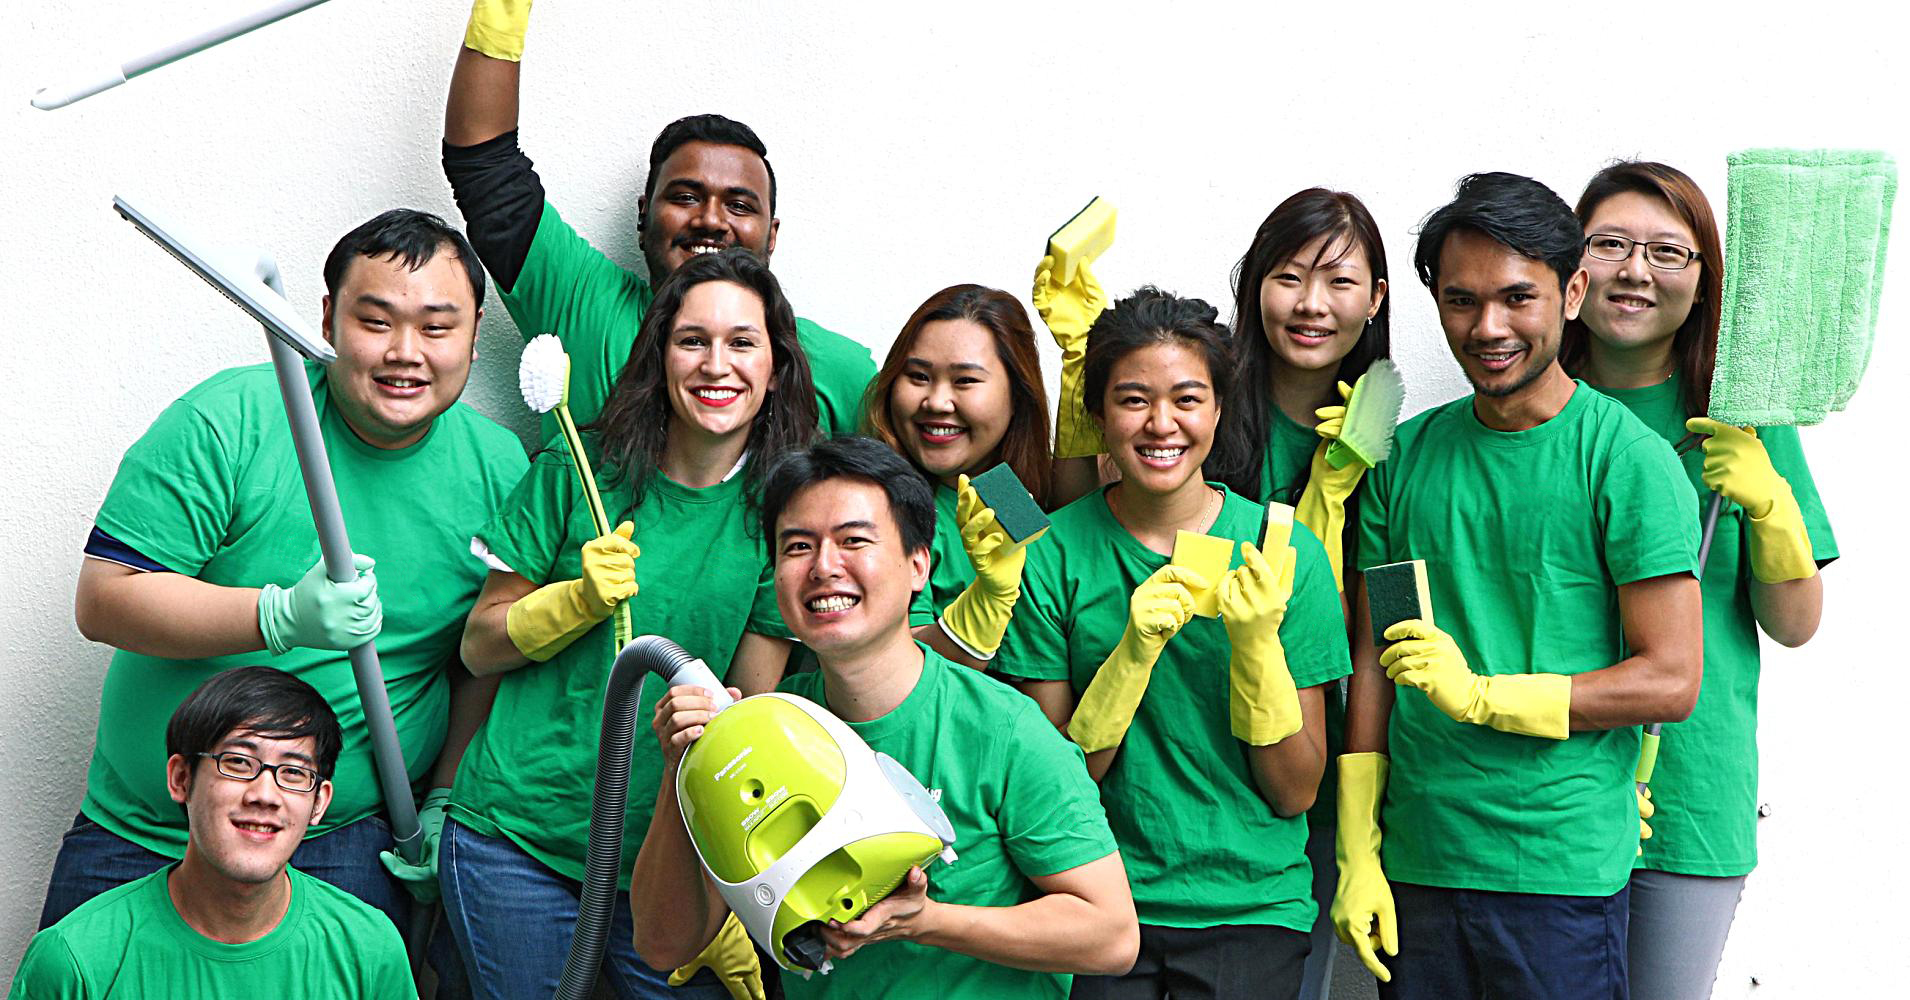 group-of-cleaners-in-green-uniform